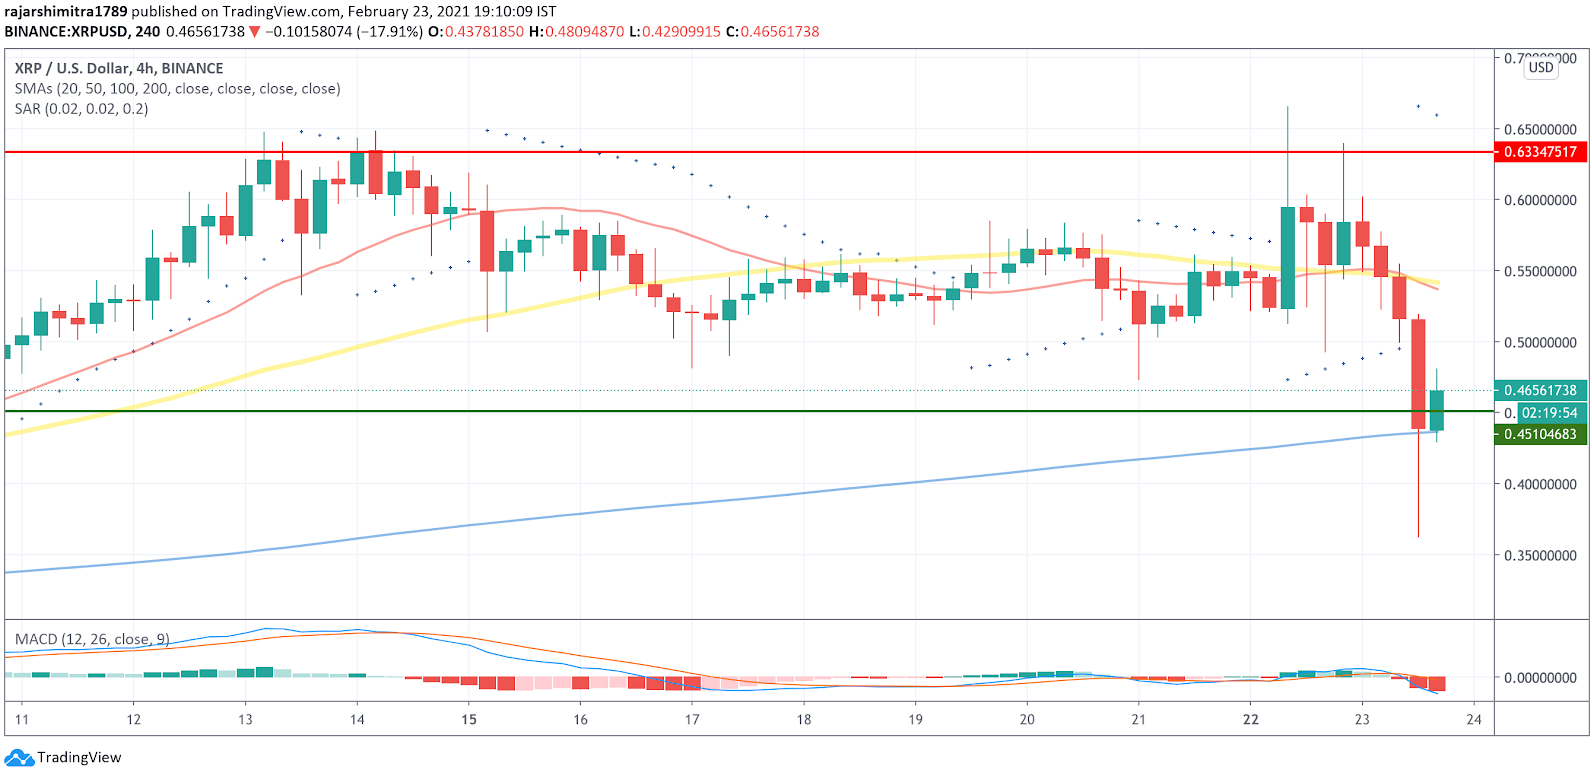 xrp/usd 4-hour chart 022421